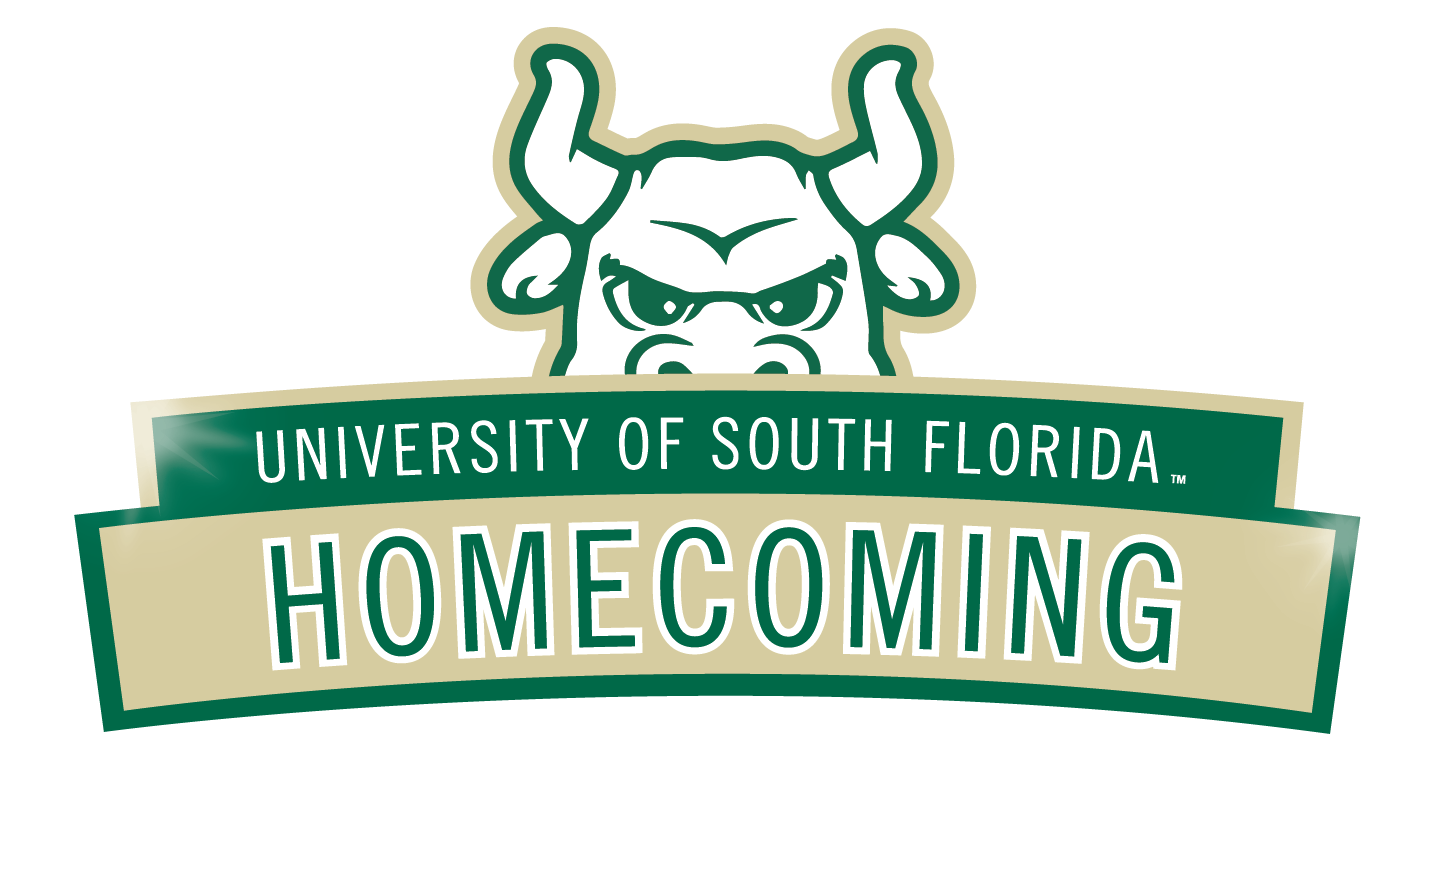 Homecoming University of South Florida